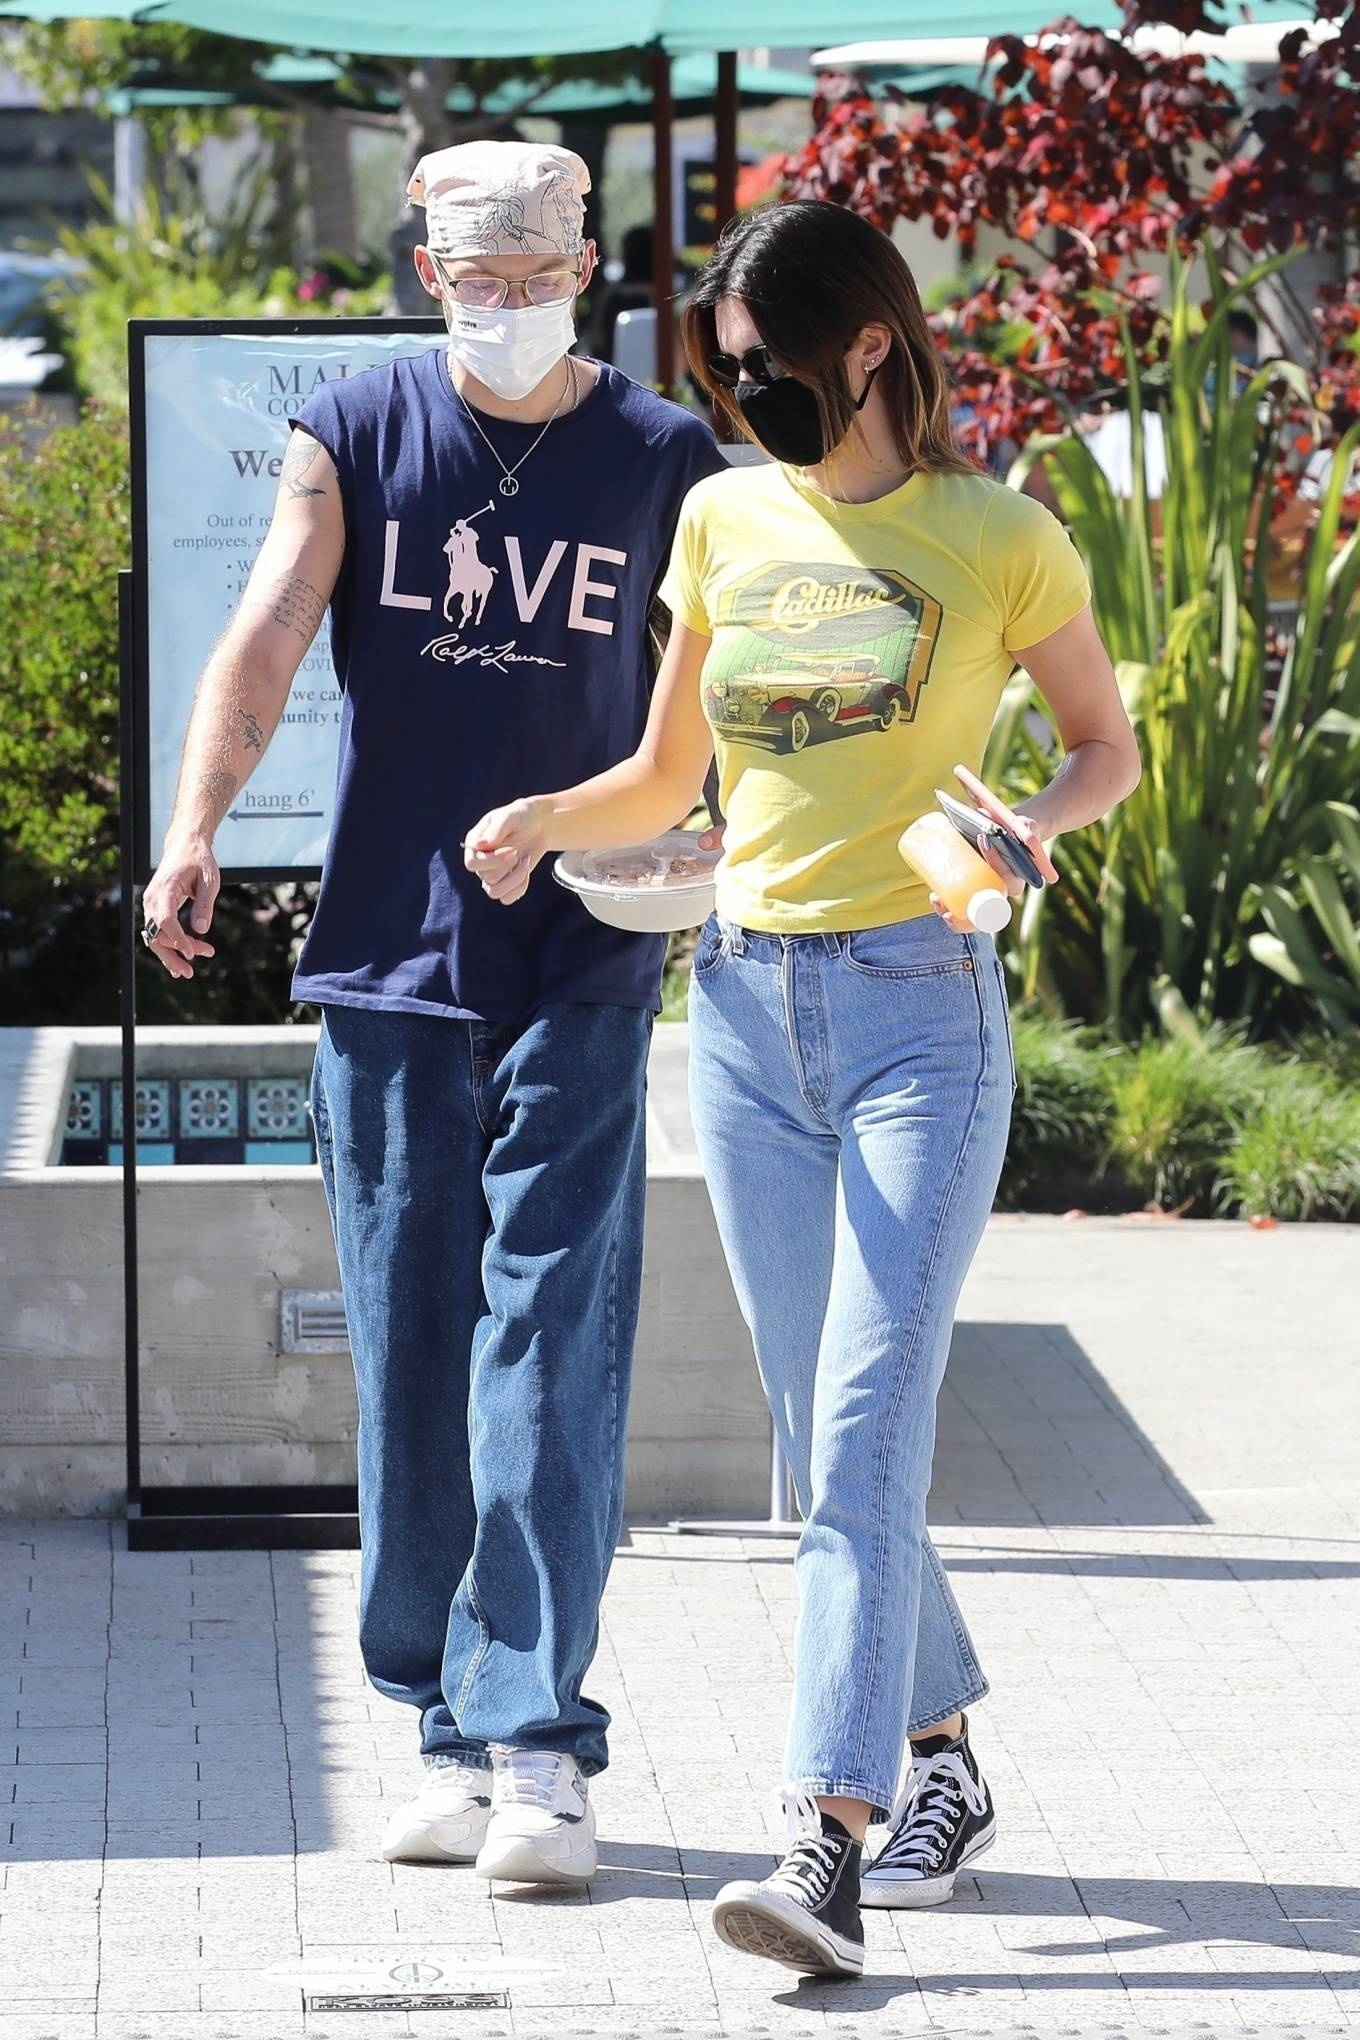 Kendall Jenner rocking a yellow graphic print tee with short sleeves and a crew neck